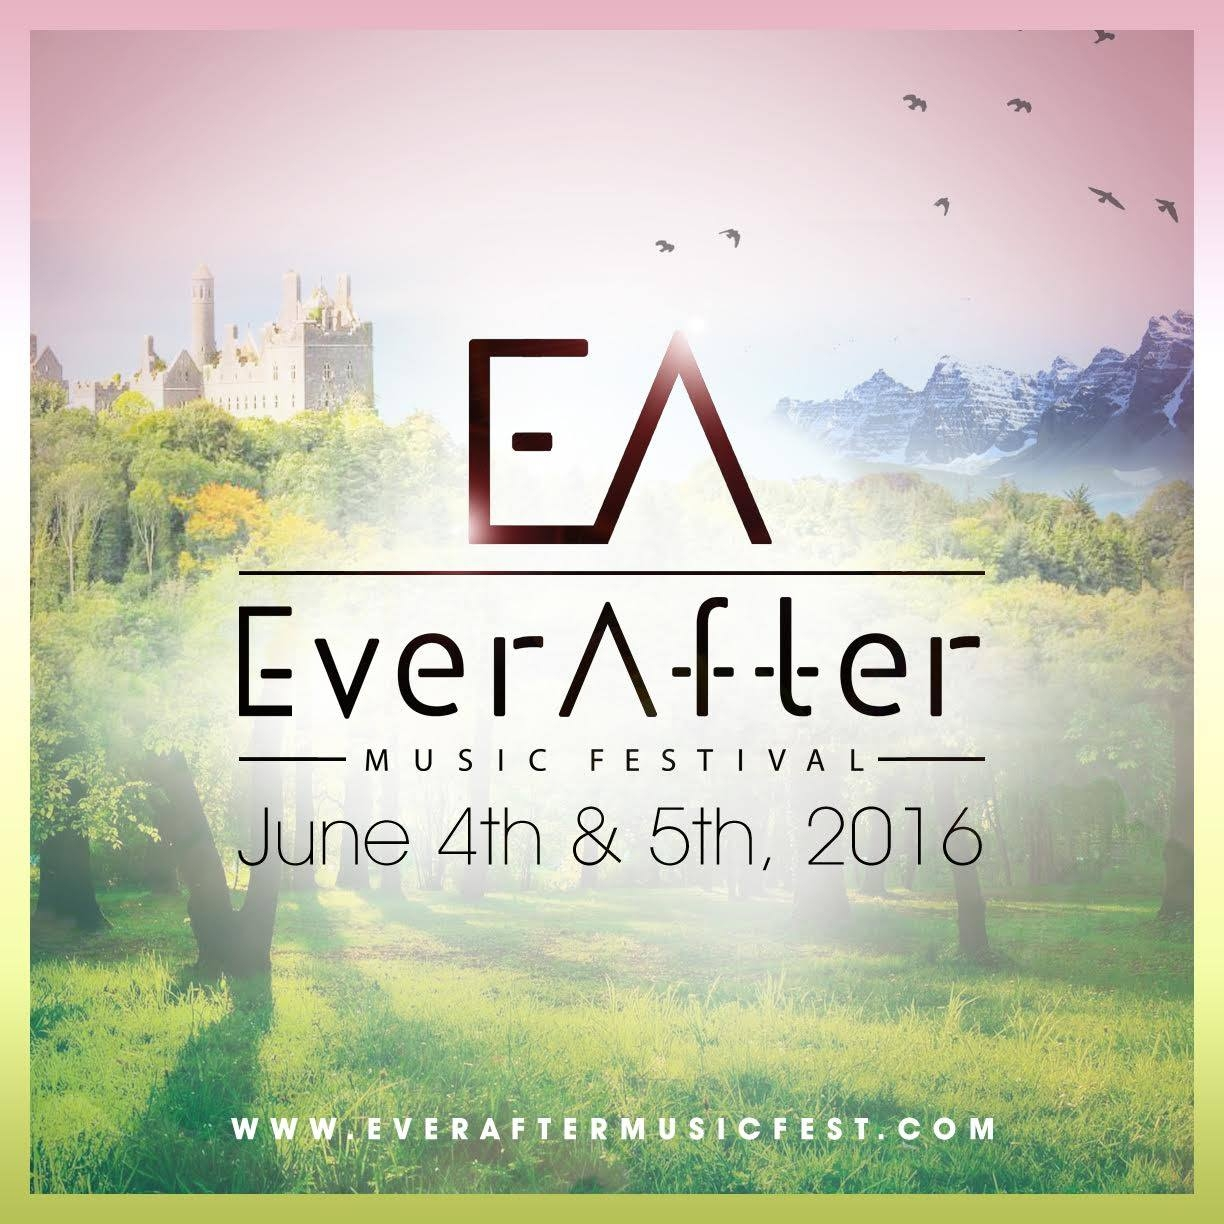 EverAfter_FB_Dates